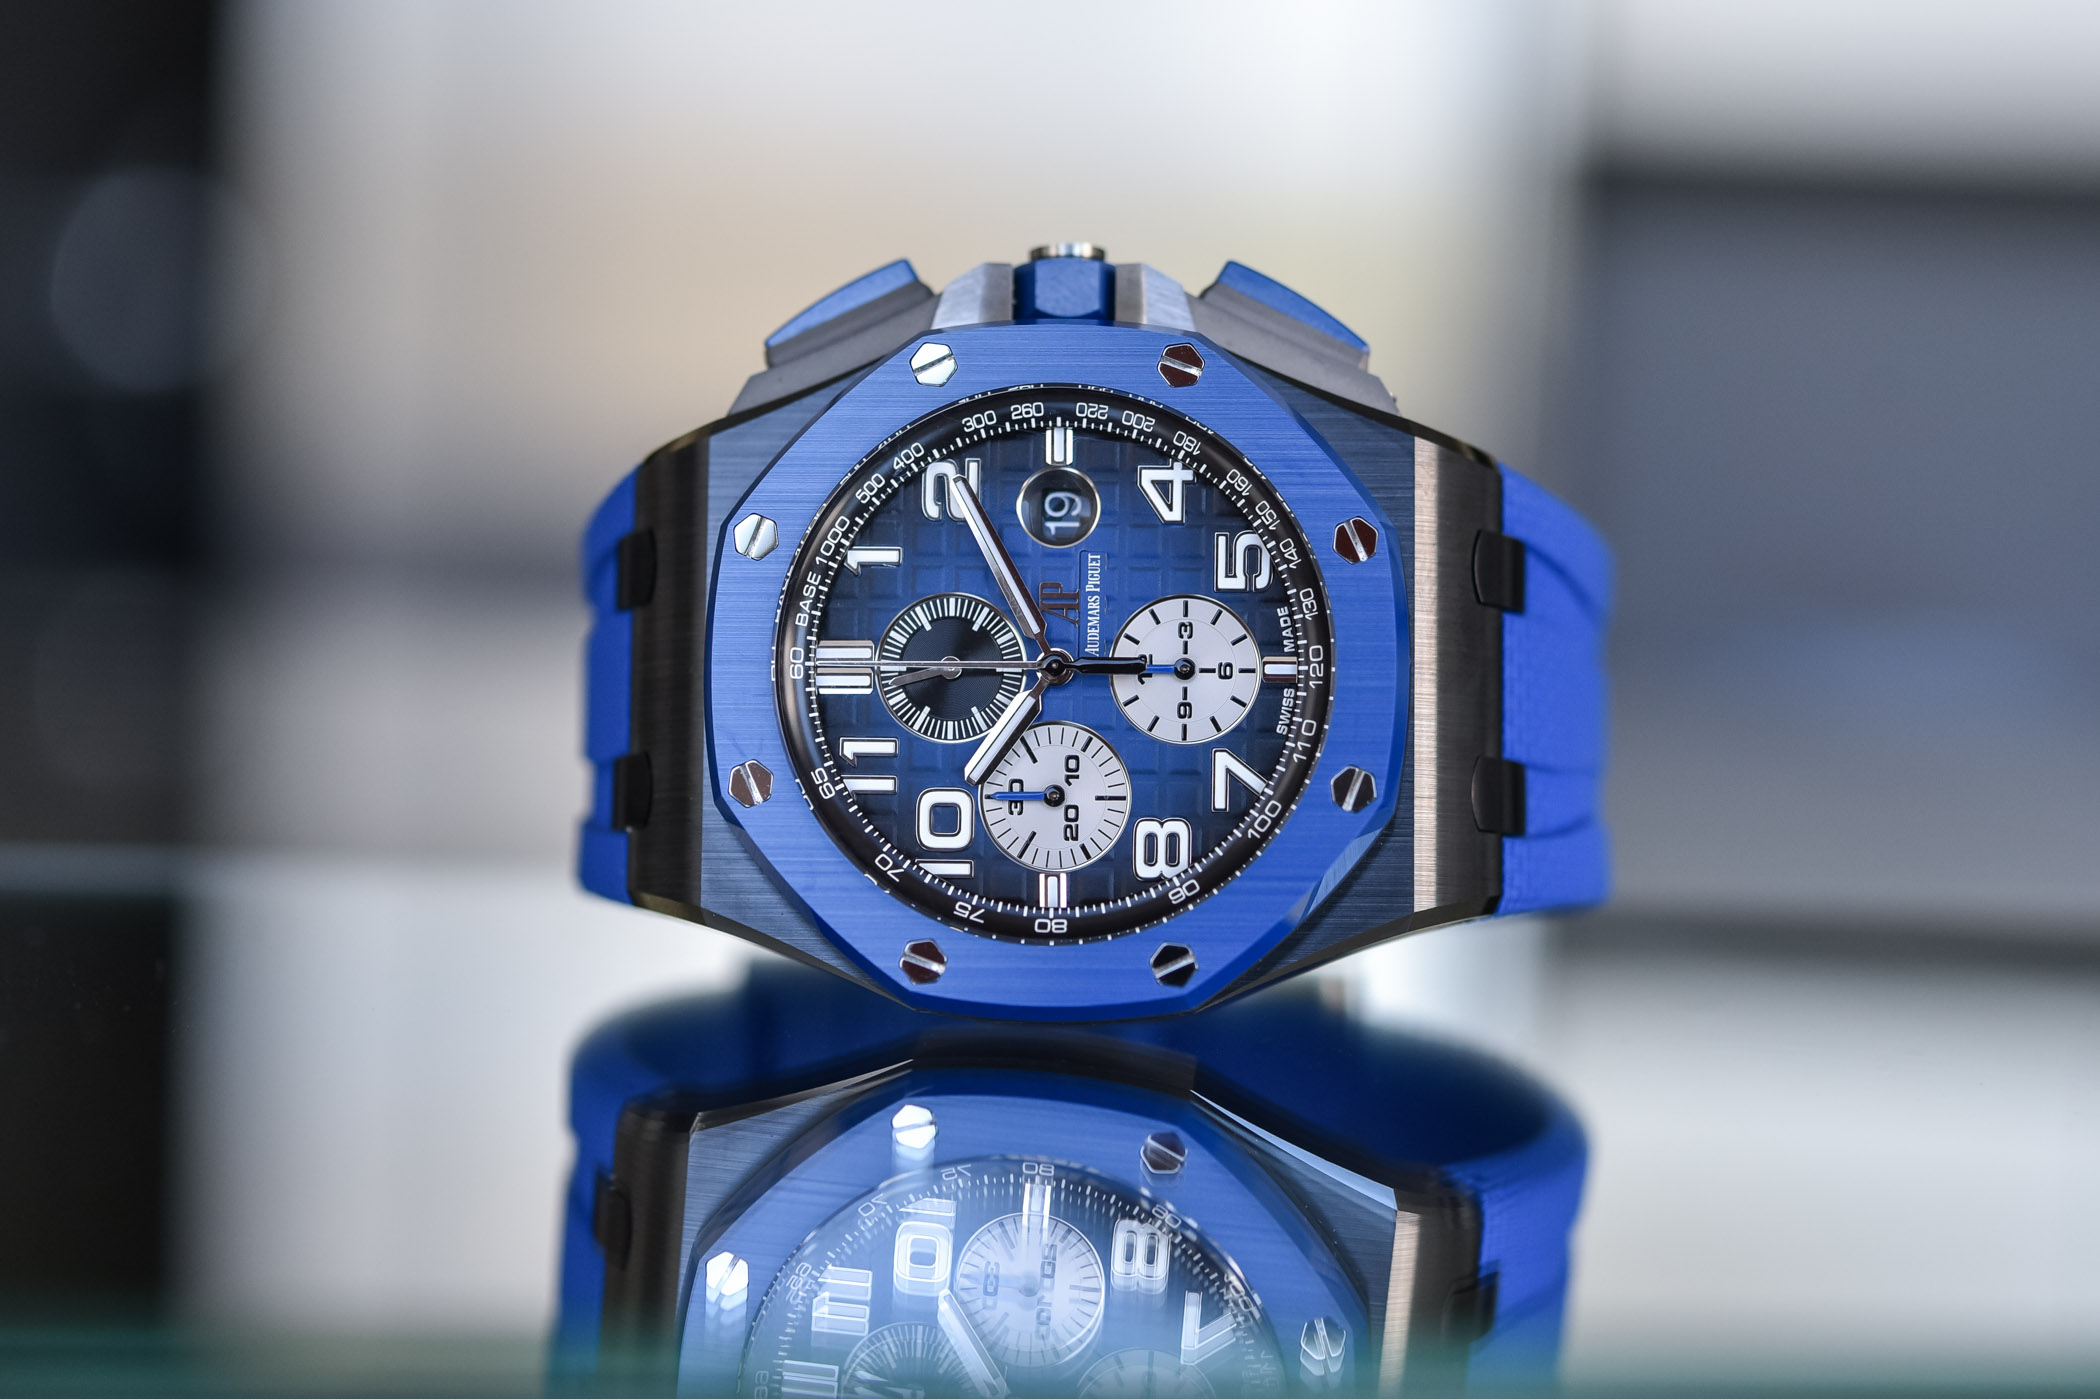 Audemars Piguet Royal Oak Offshore Selfwinding Chronograph 44mm 2020 Smoked Dial - 26405CE.OO.A030CA.01